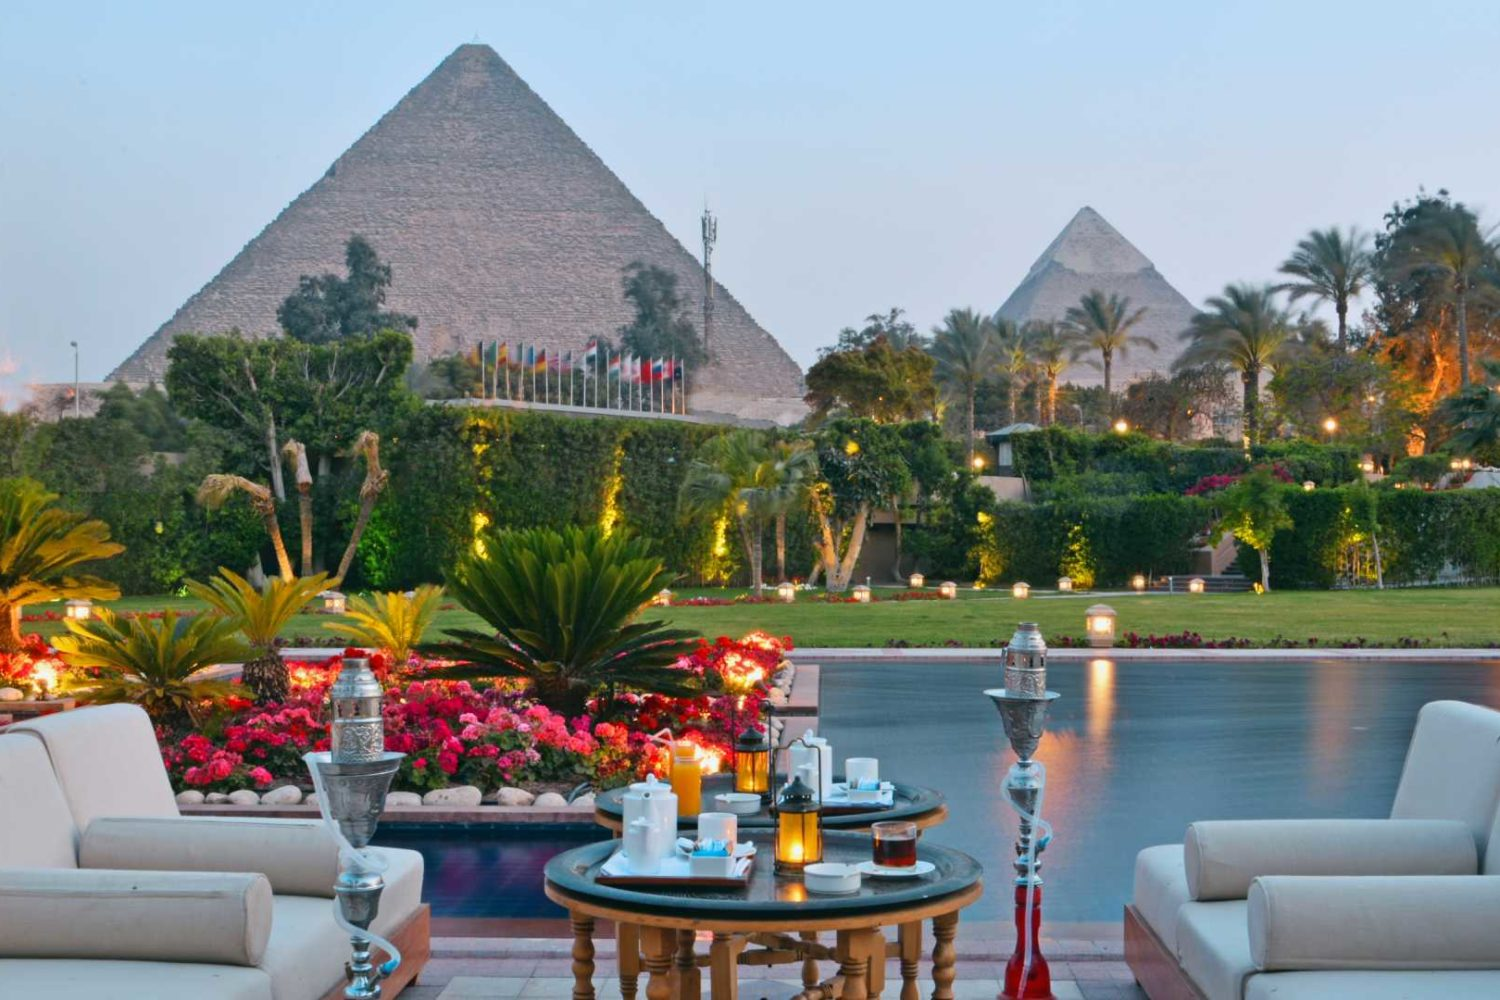 luxury hotels in Egypt, Marriott Mena house